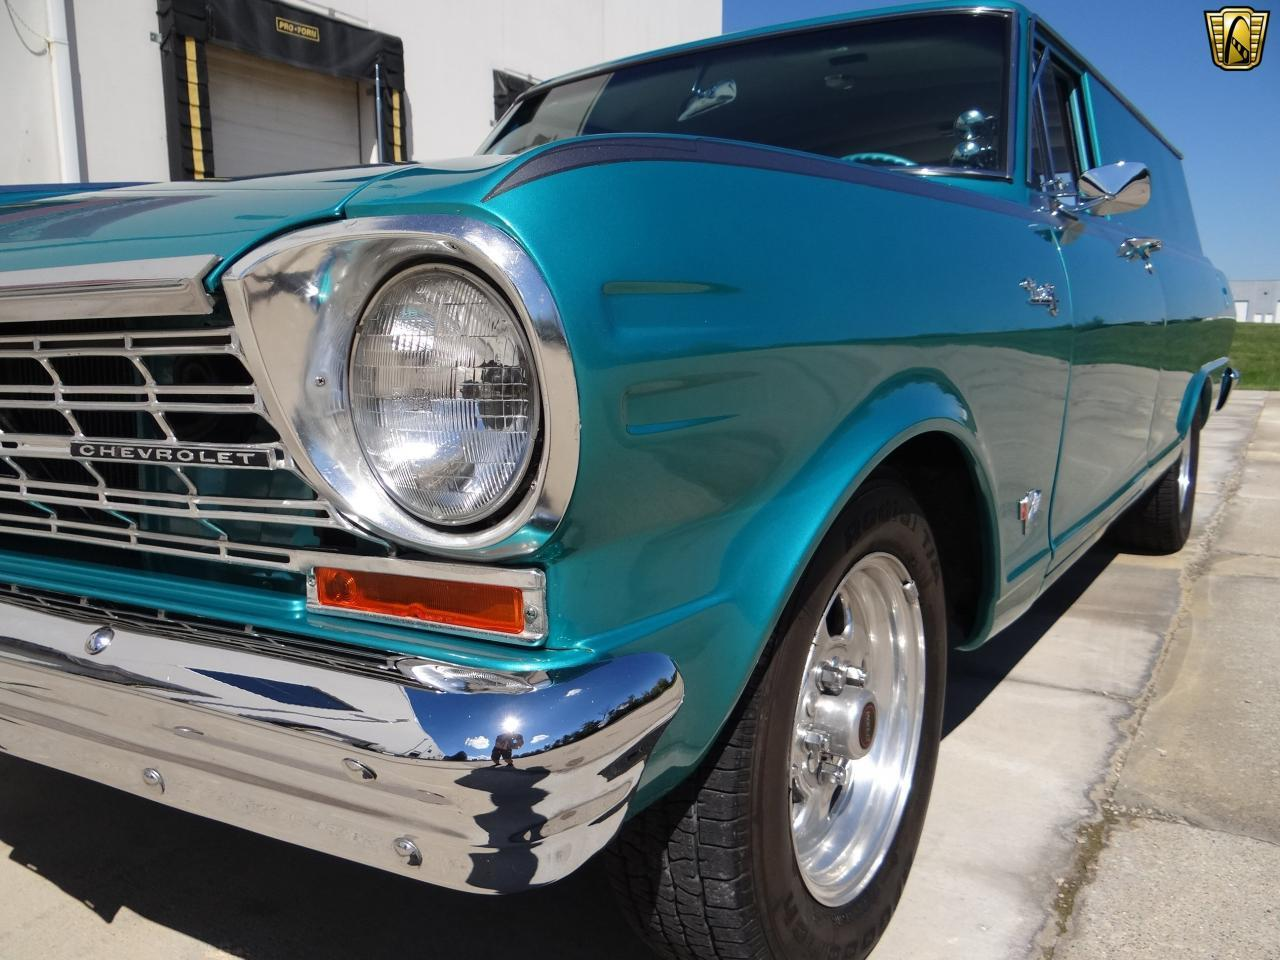 Large Picture of '64 Chevrolet Nova located in Indiana Offered by Gateway Classic Cars - Indianapolis - KEDU